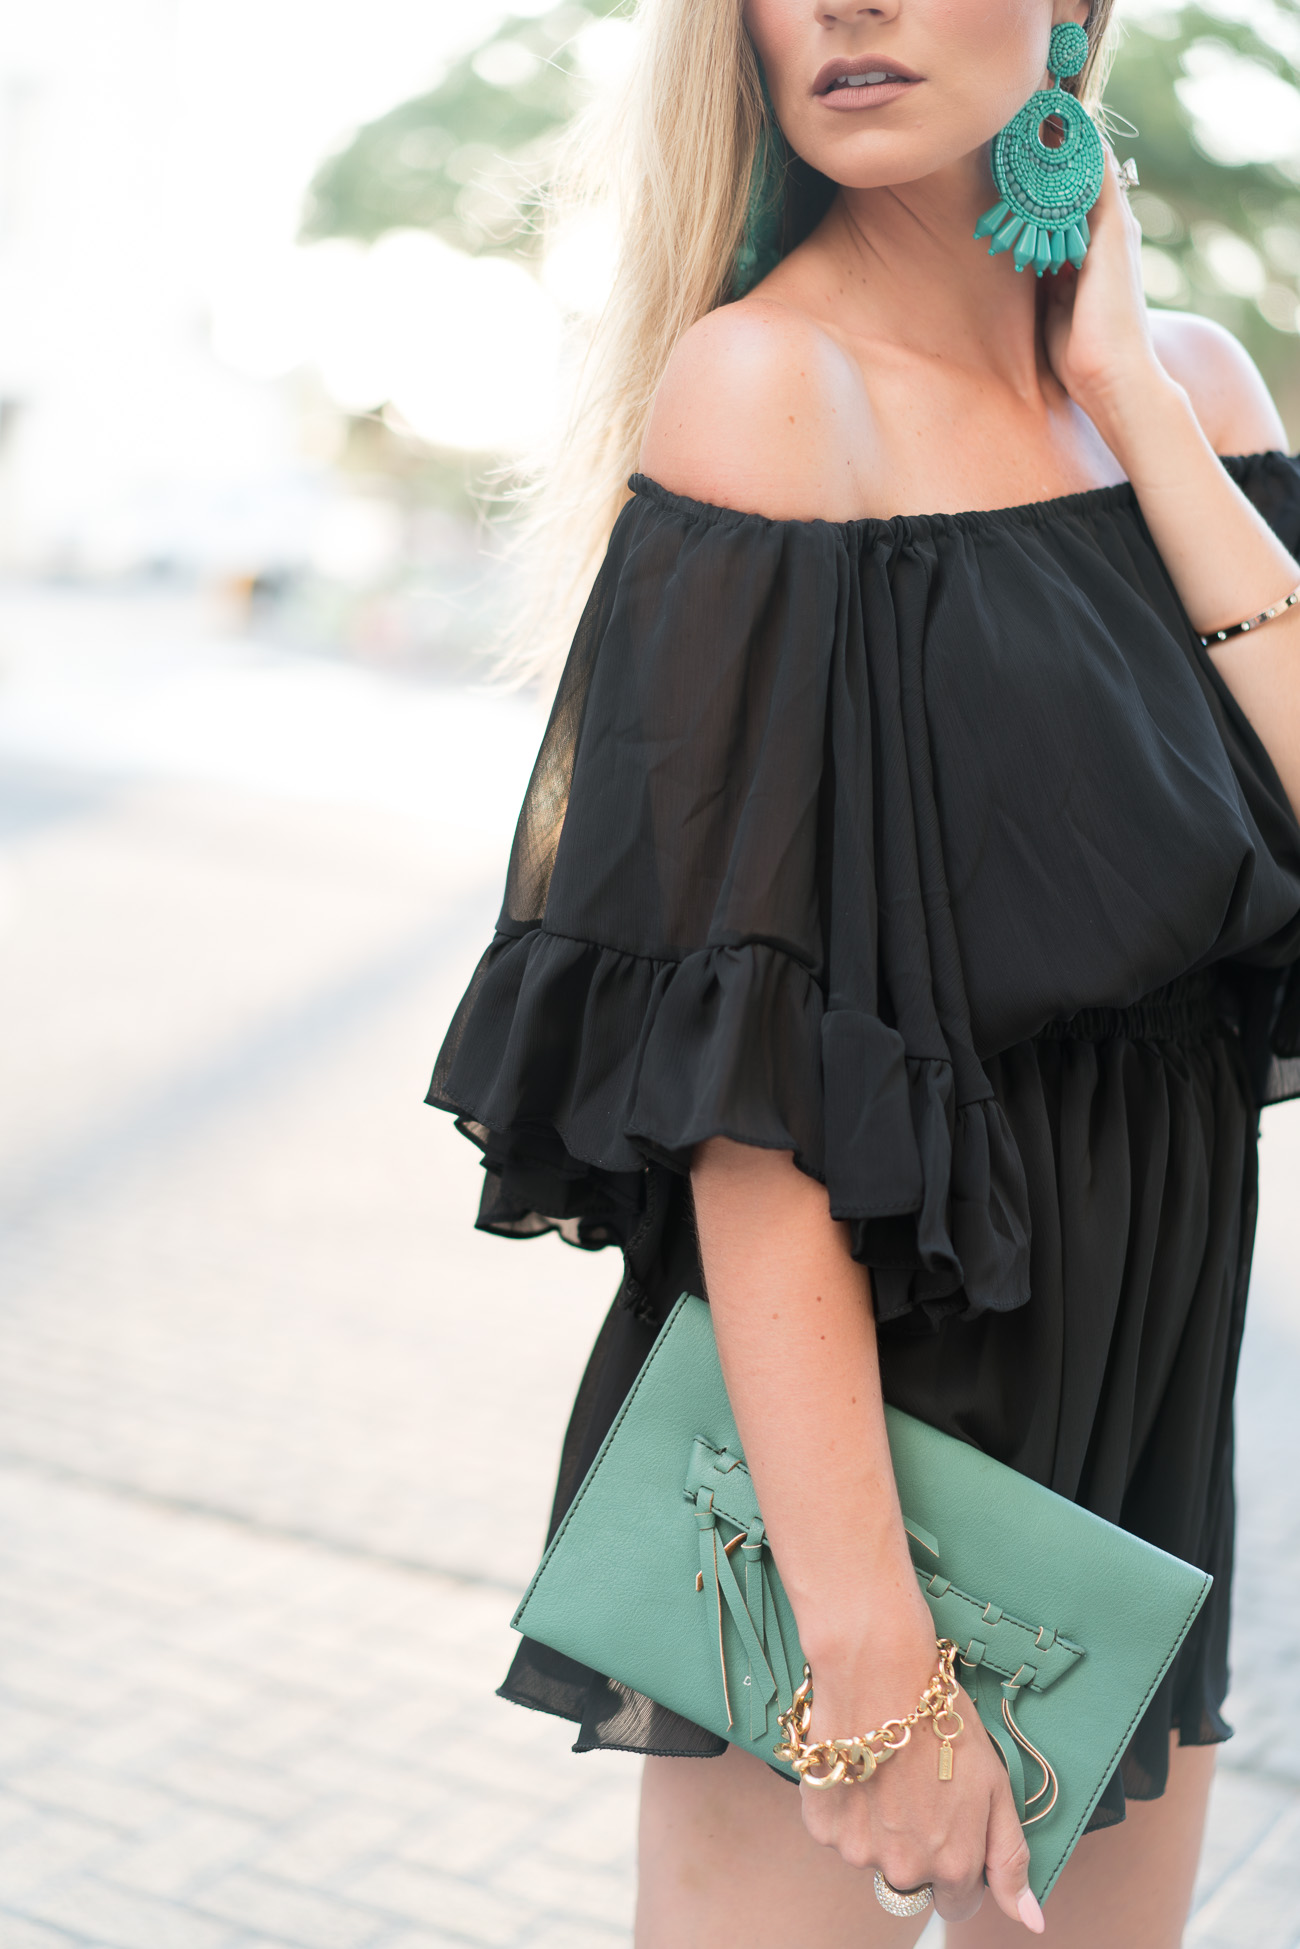 ruffled chiffon black romper turquoise earrings and SheIn online order review angela lanter hello gorgeous